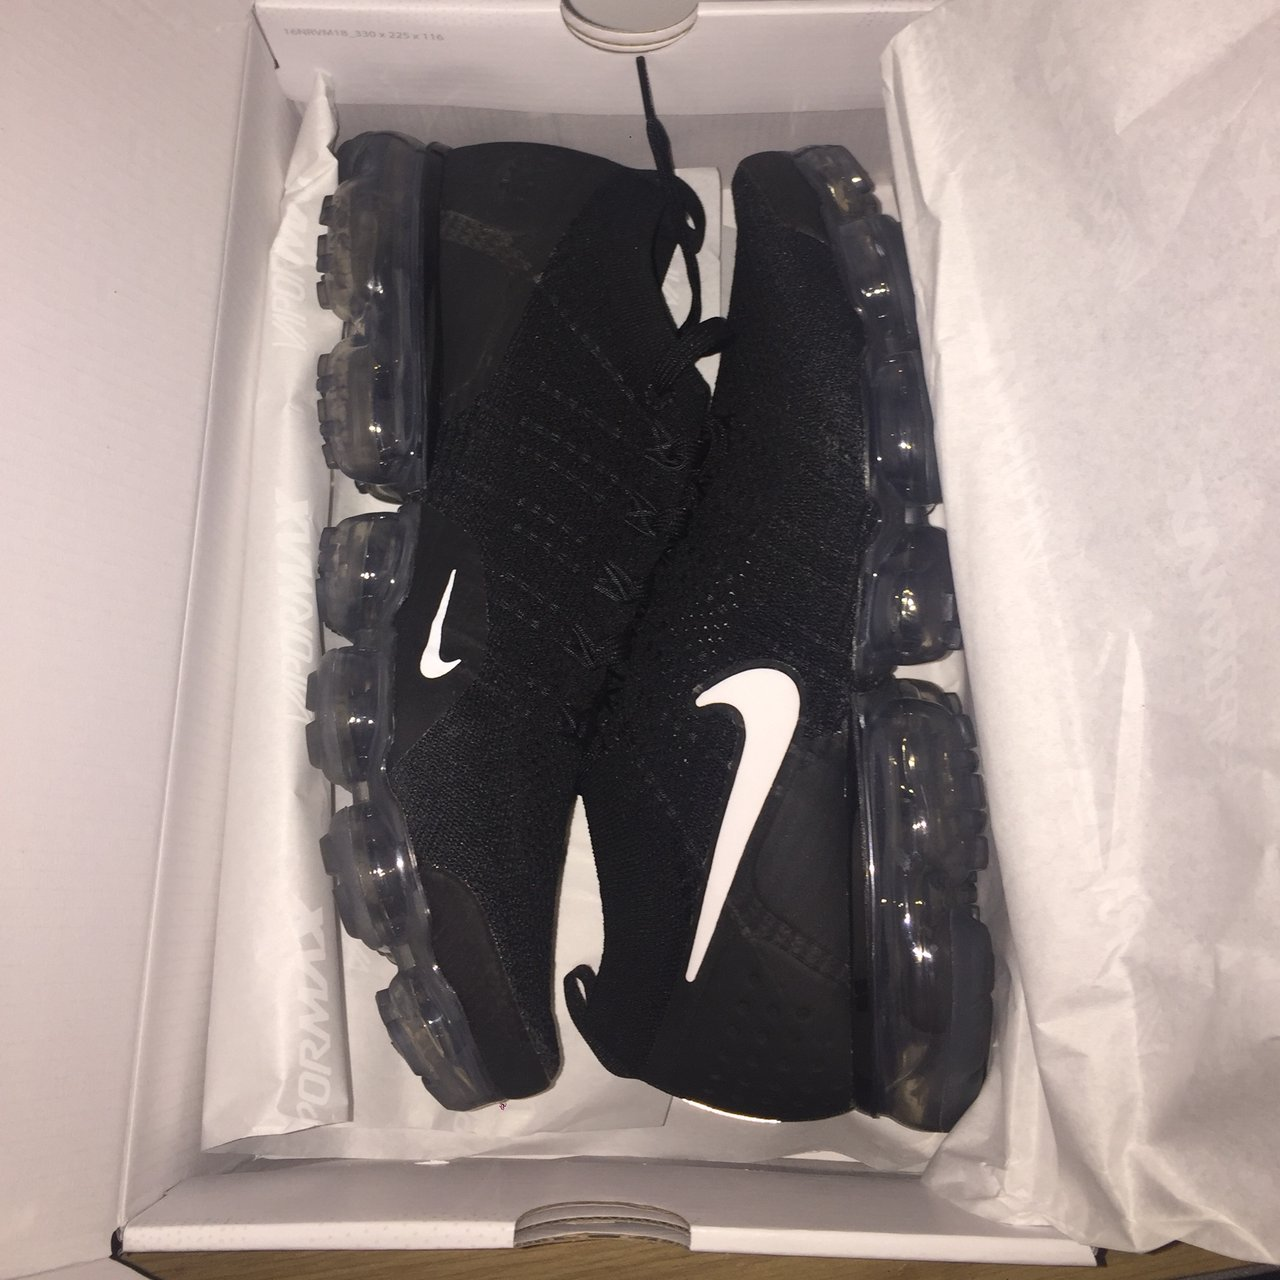 be8803e383 @ibraar07. 8 months ago. Stoke-on-Trent, United Kingdom. Nike air vapormax  flyknit. Worn once. Condition 9.5/10